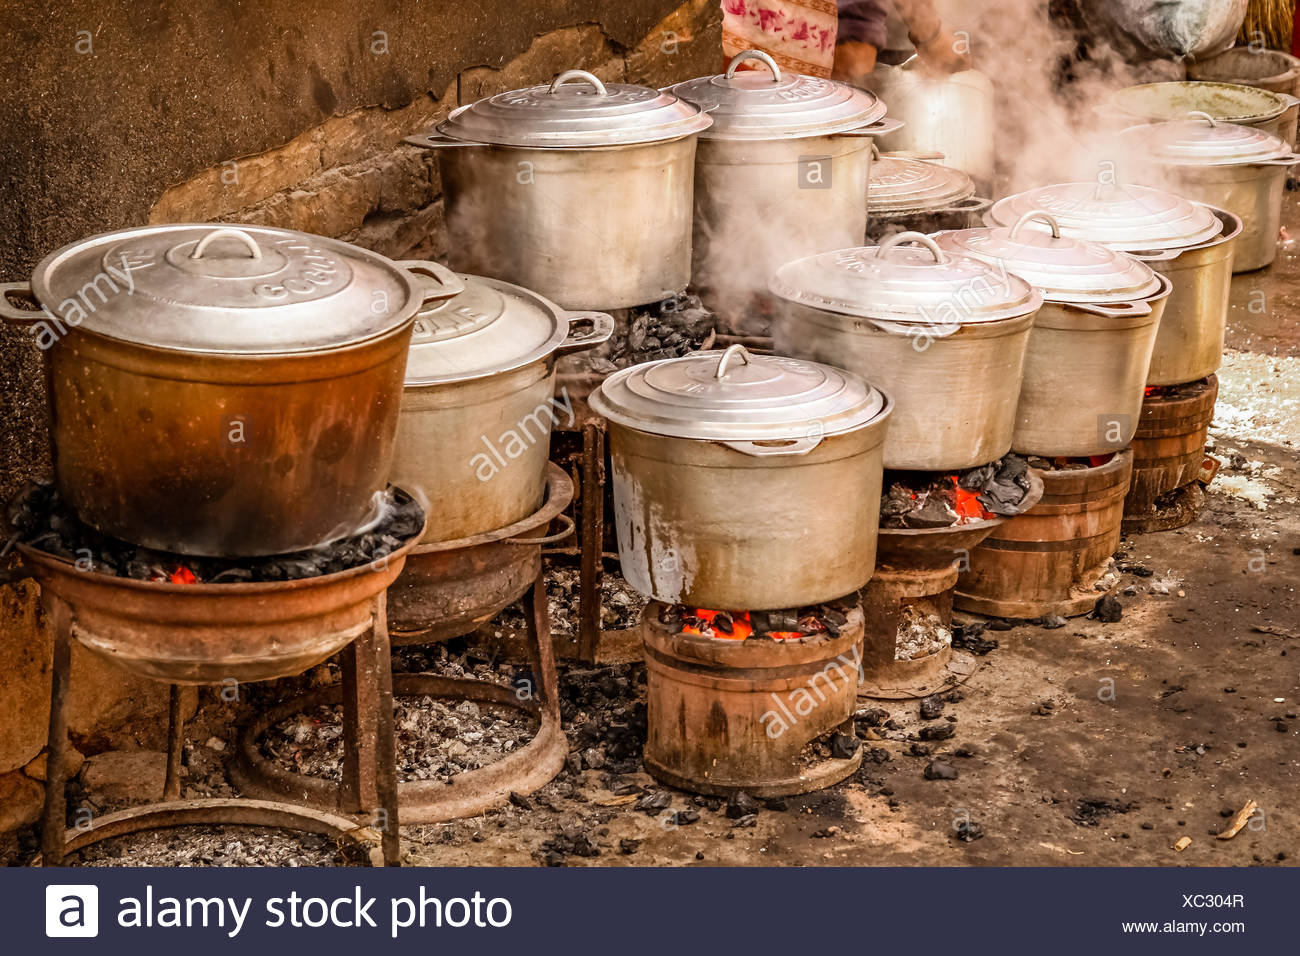 Pots on fire - Stock Image